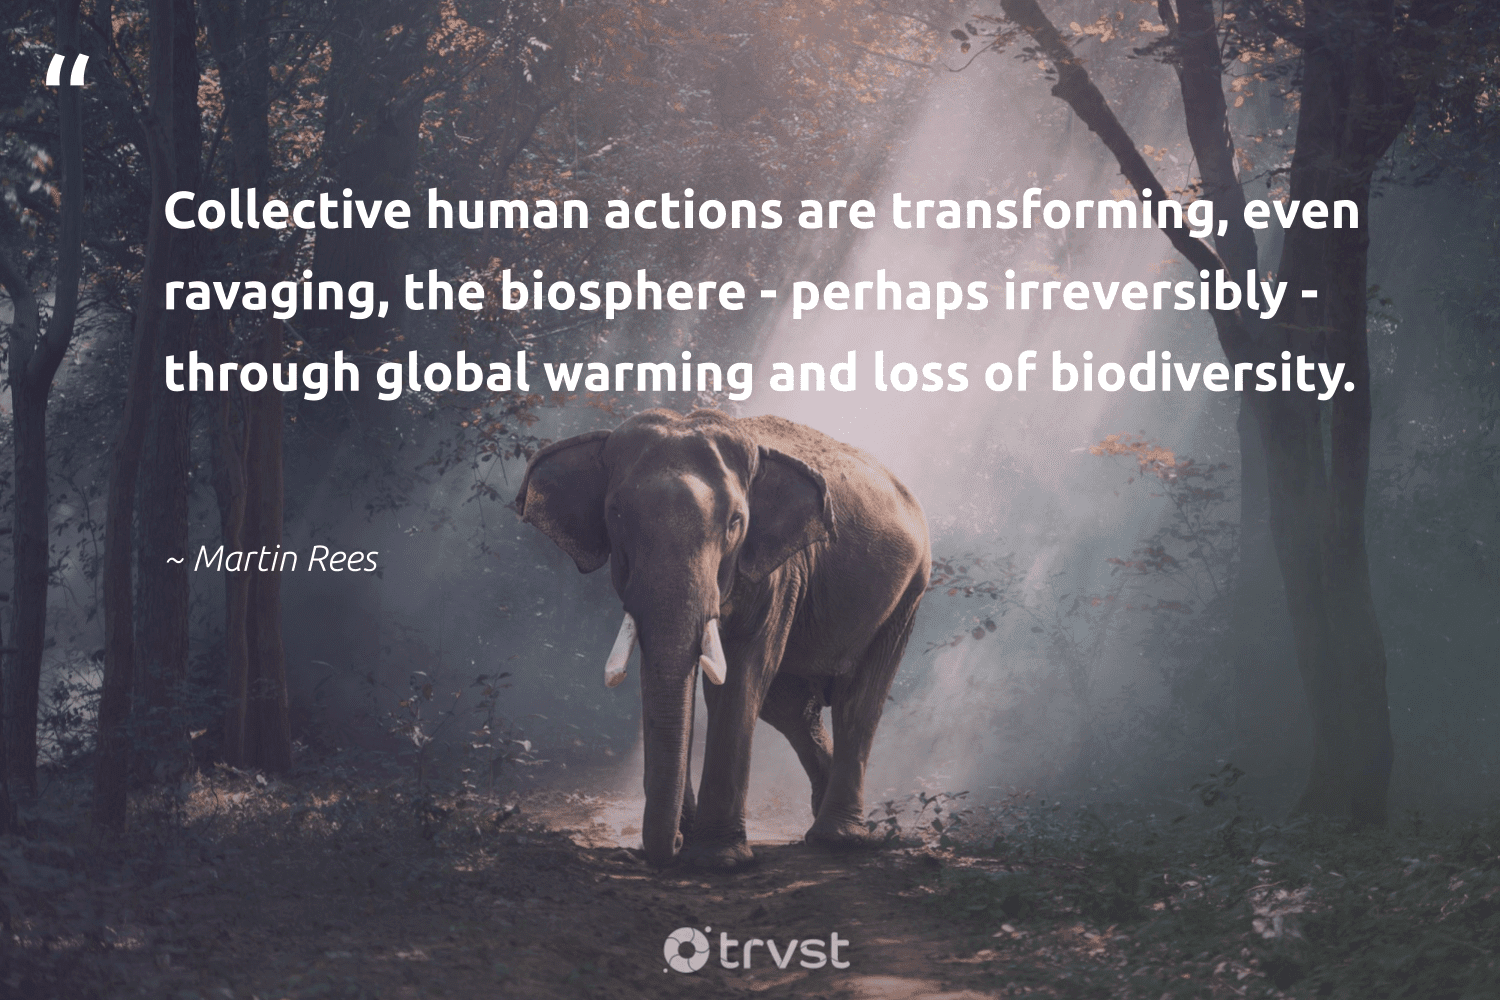 """""""Collective human actions are transforming, even ravaging, the biosphere - perhaps irreversibly - through global warming and loss of biodiversity.""""  - Martin Rees #trvst #quotes #biodiversity #globalwarming #nature #forscience #fish #takeaction #environment #sanctuary #science #bethechange"""